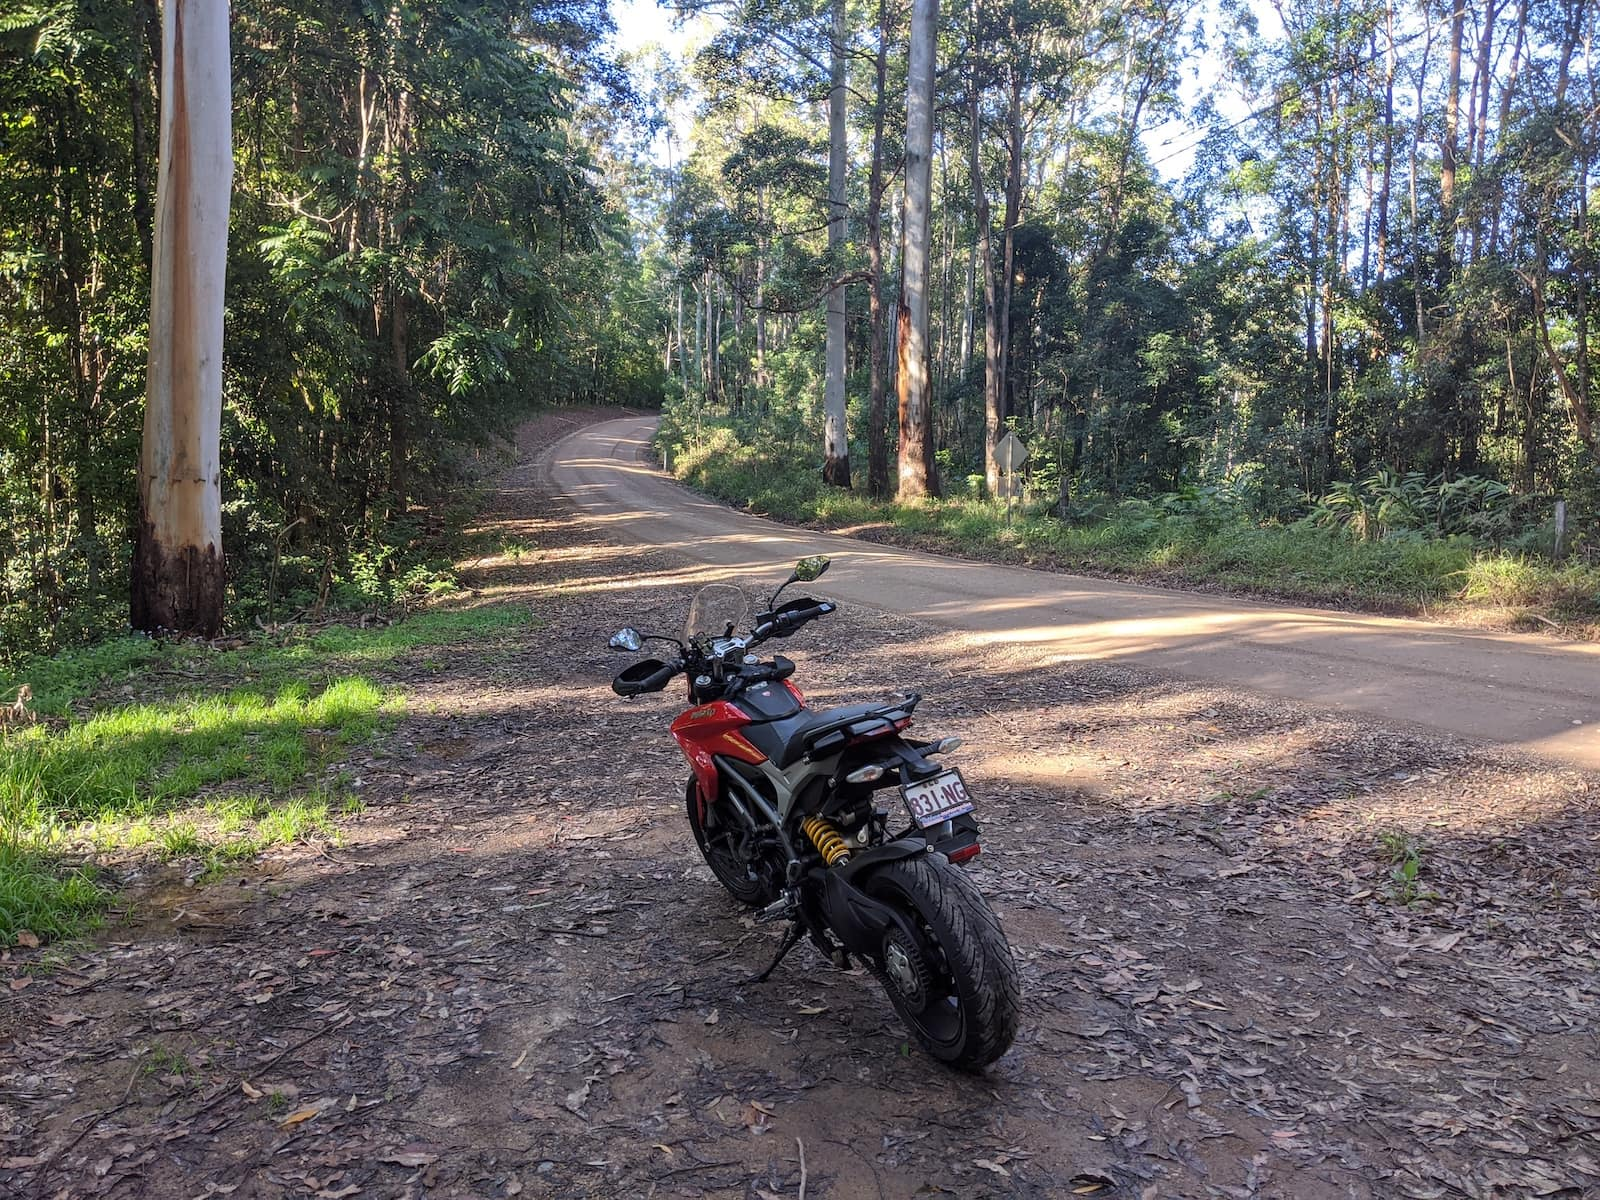 The Ducati Hyperstrada on a dirt road